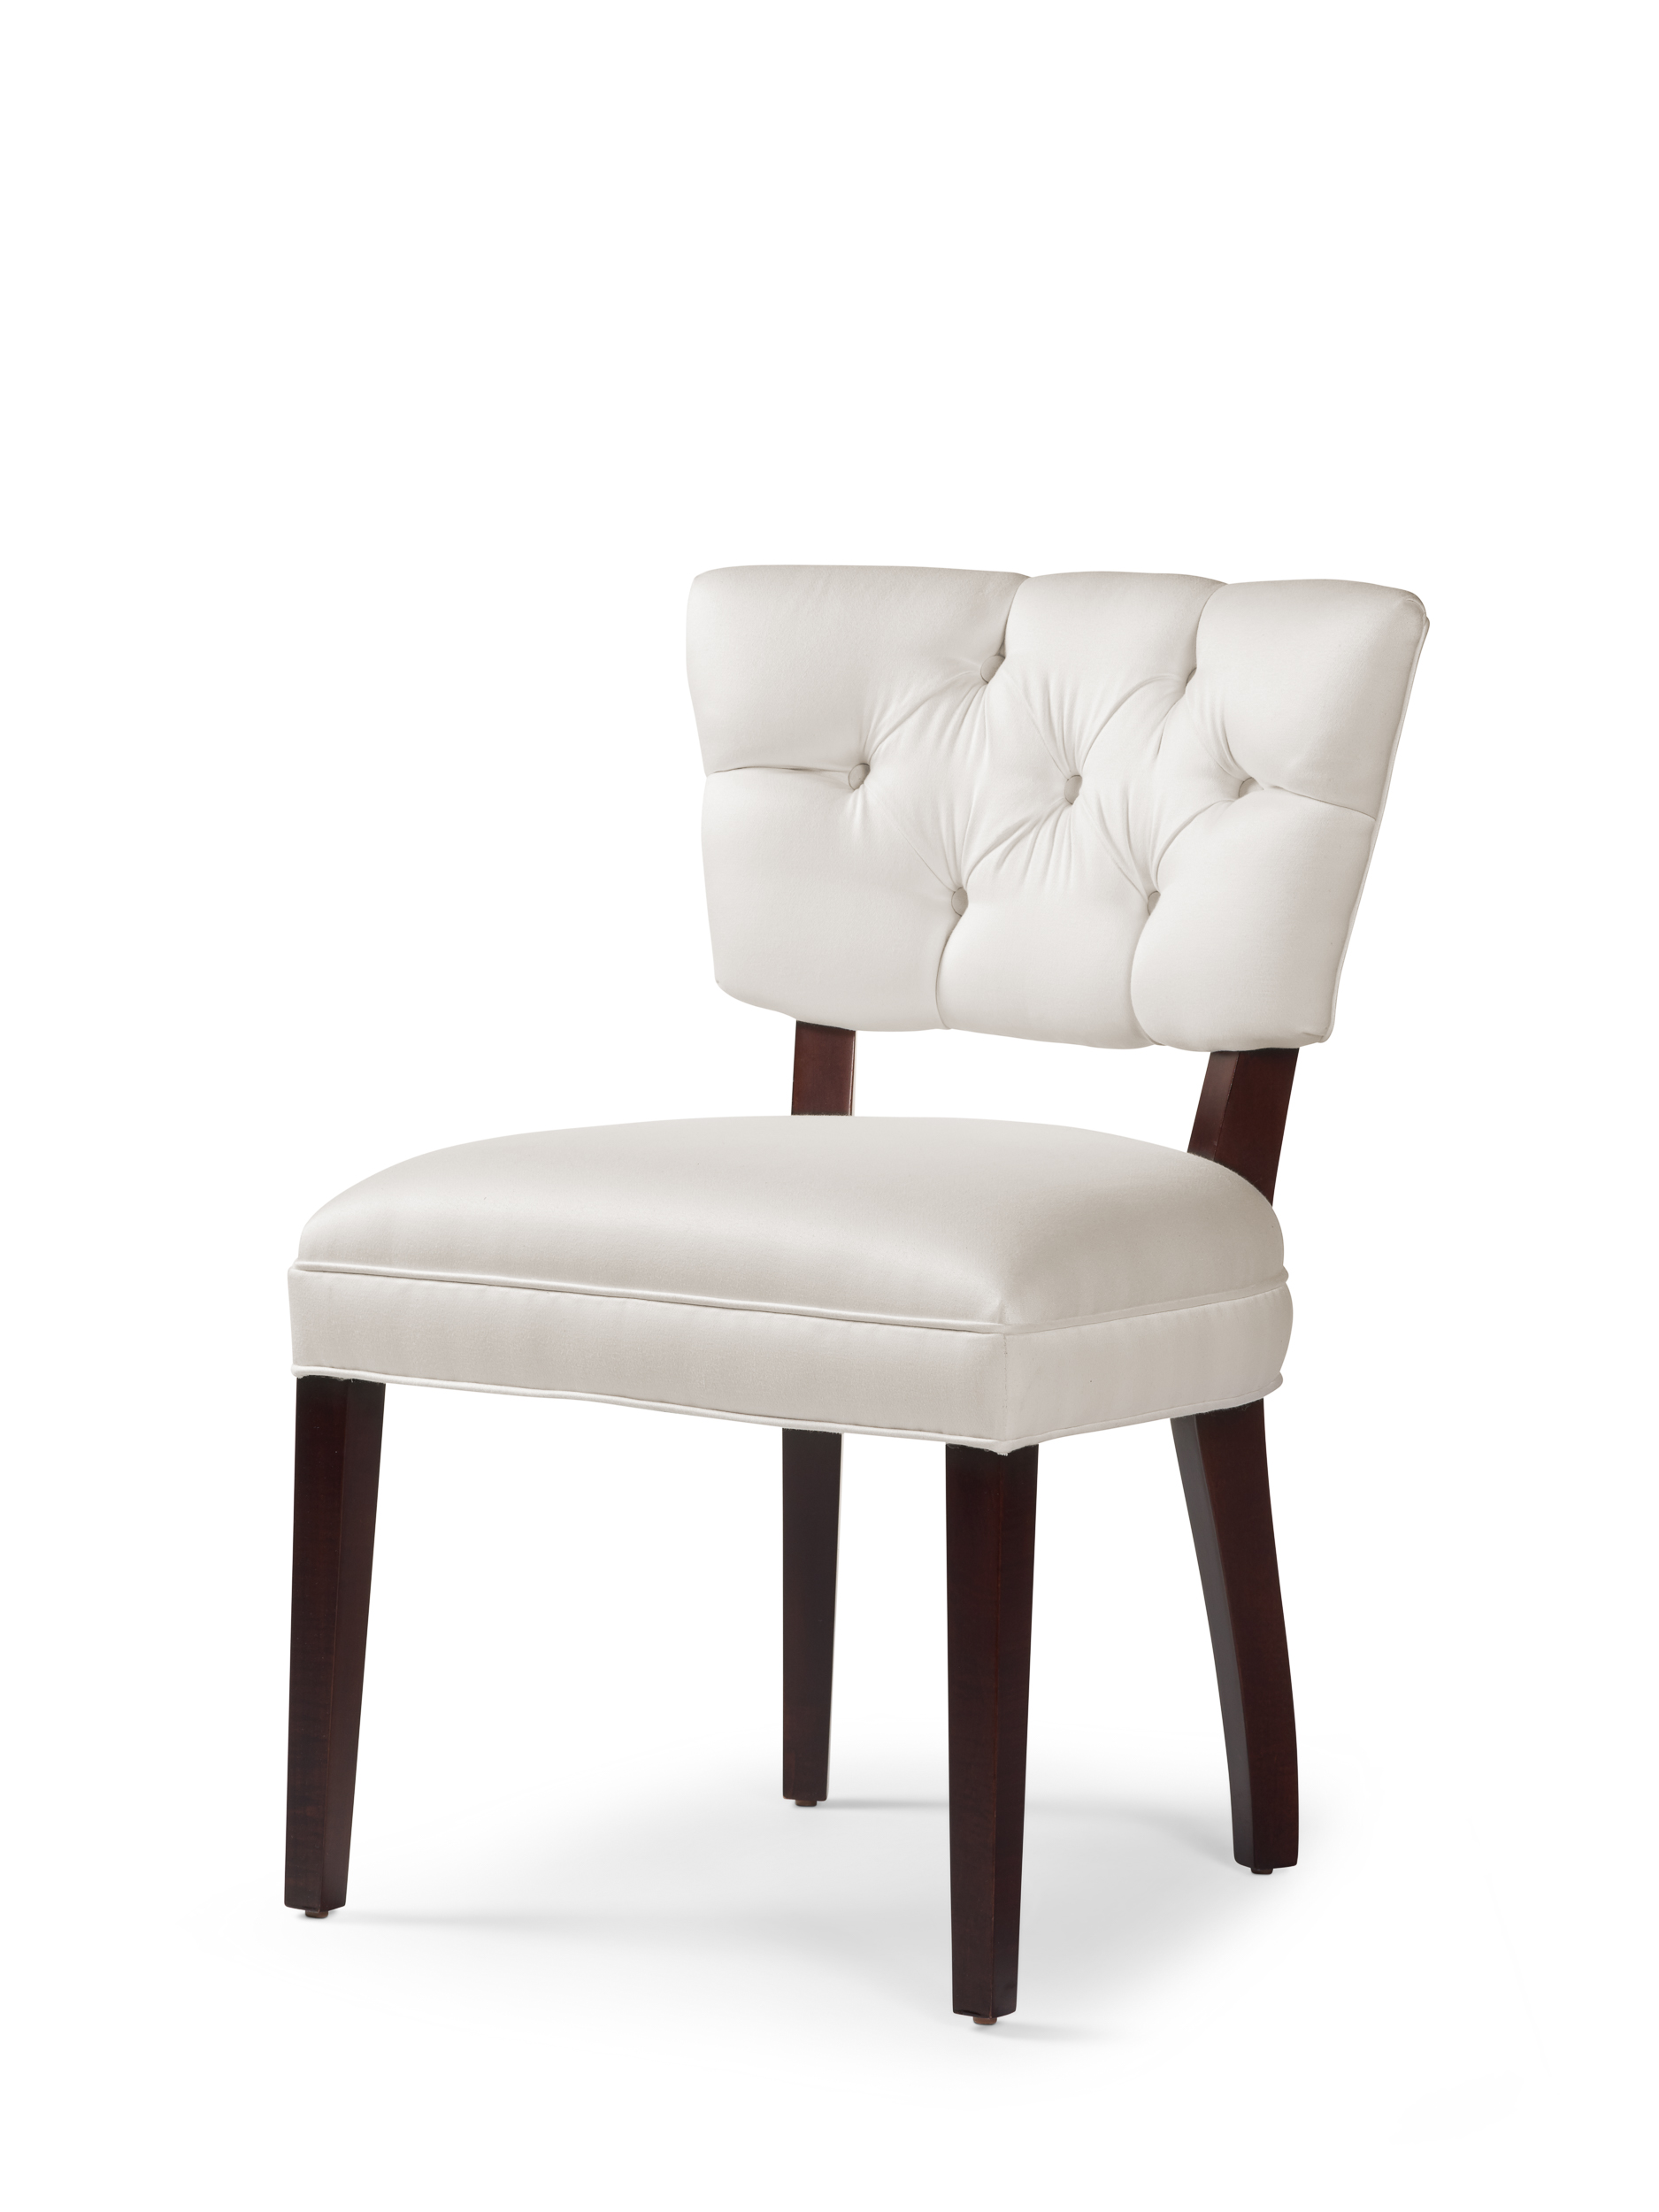 6119 Side Chair